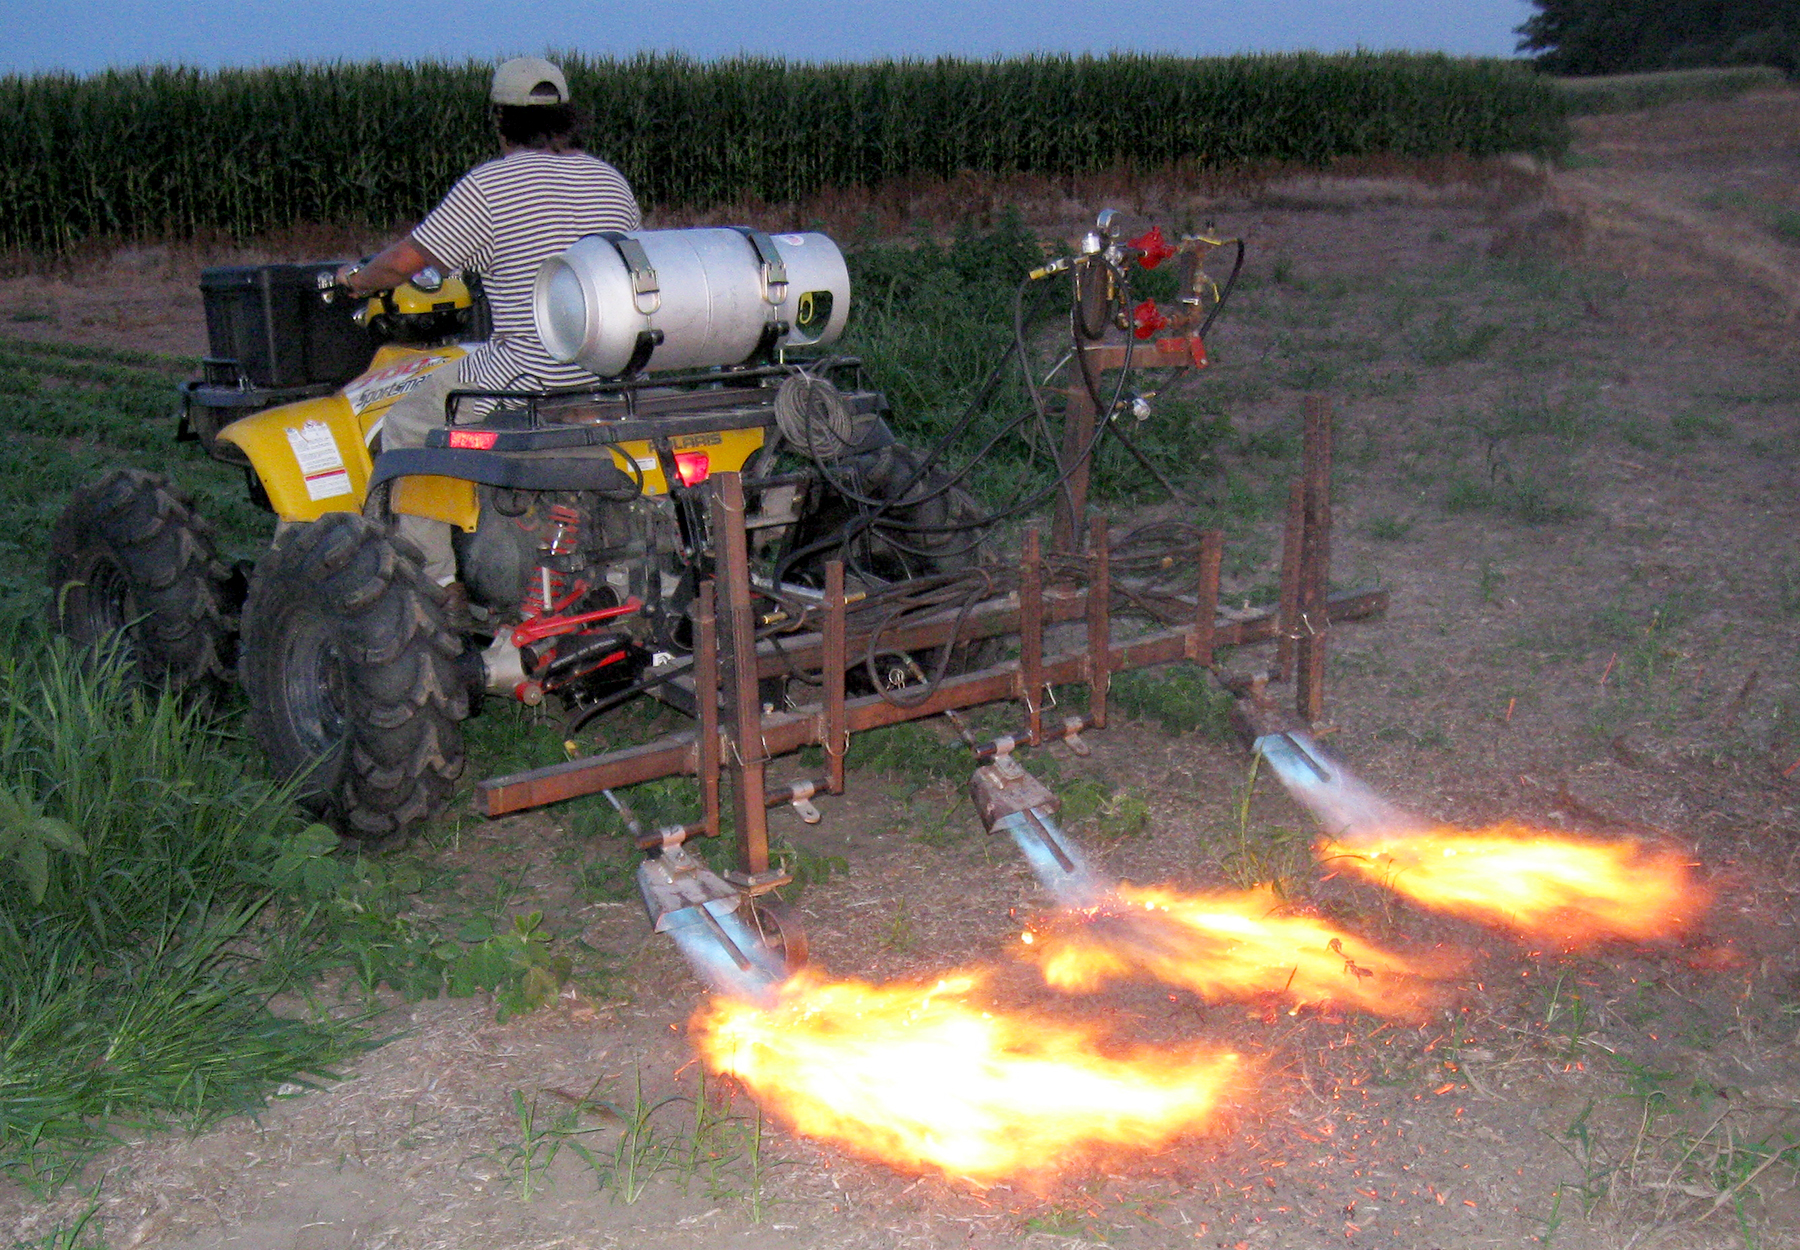 A three-row flamer mounted on an ATV is tested in the field. Tests were conducted in the evening to better observe flame shape as the flame hits the ground. (Photos by IANR Staff)